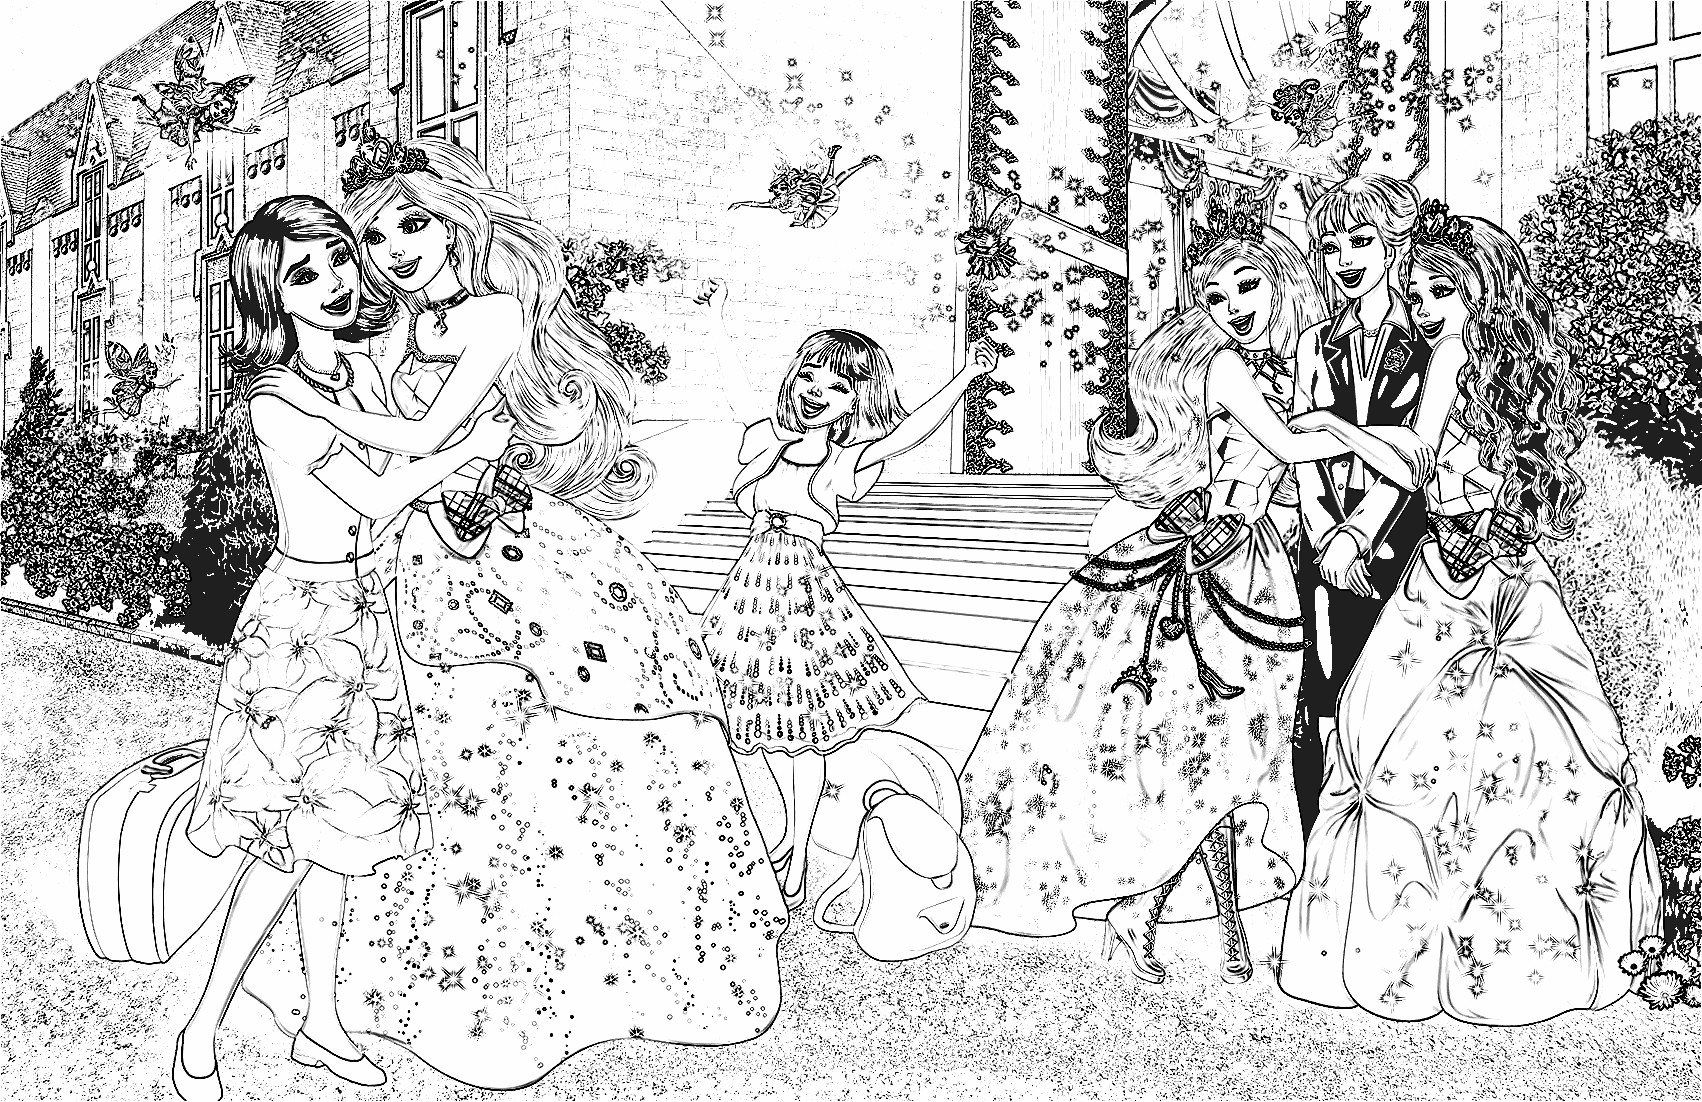 Free printable coloring pages barbie princess - Princess Barbie Coloring Pages Preal Barbie The Princess Barbie Barbie Princess Charm School Coloring Pages 8